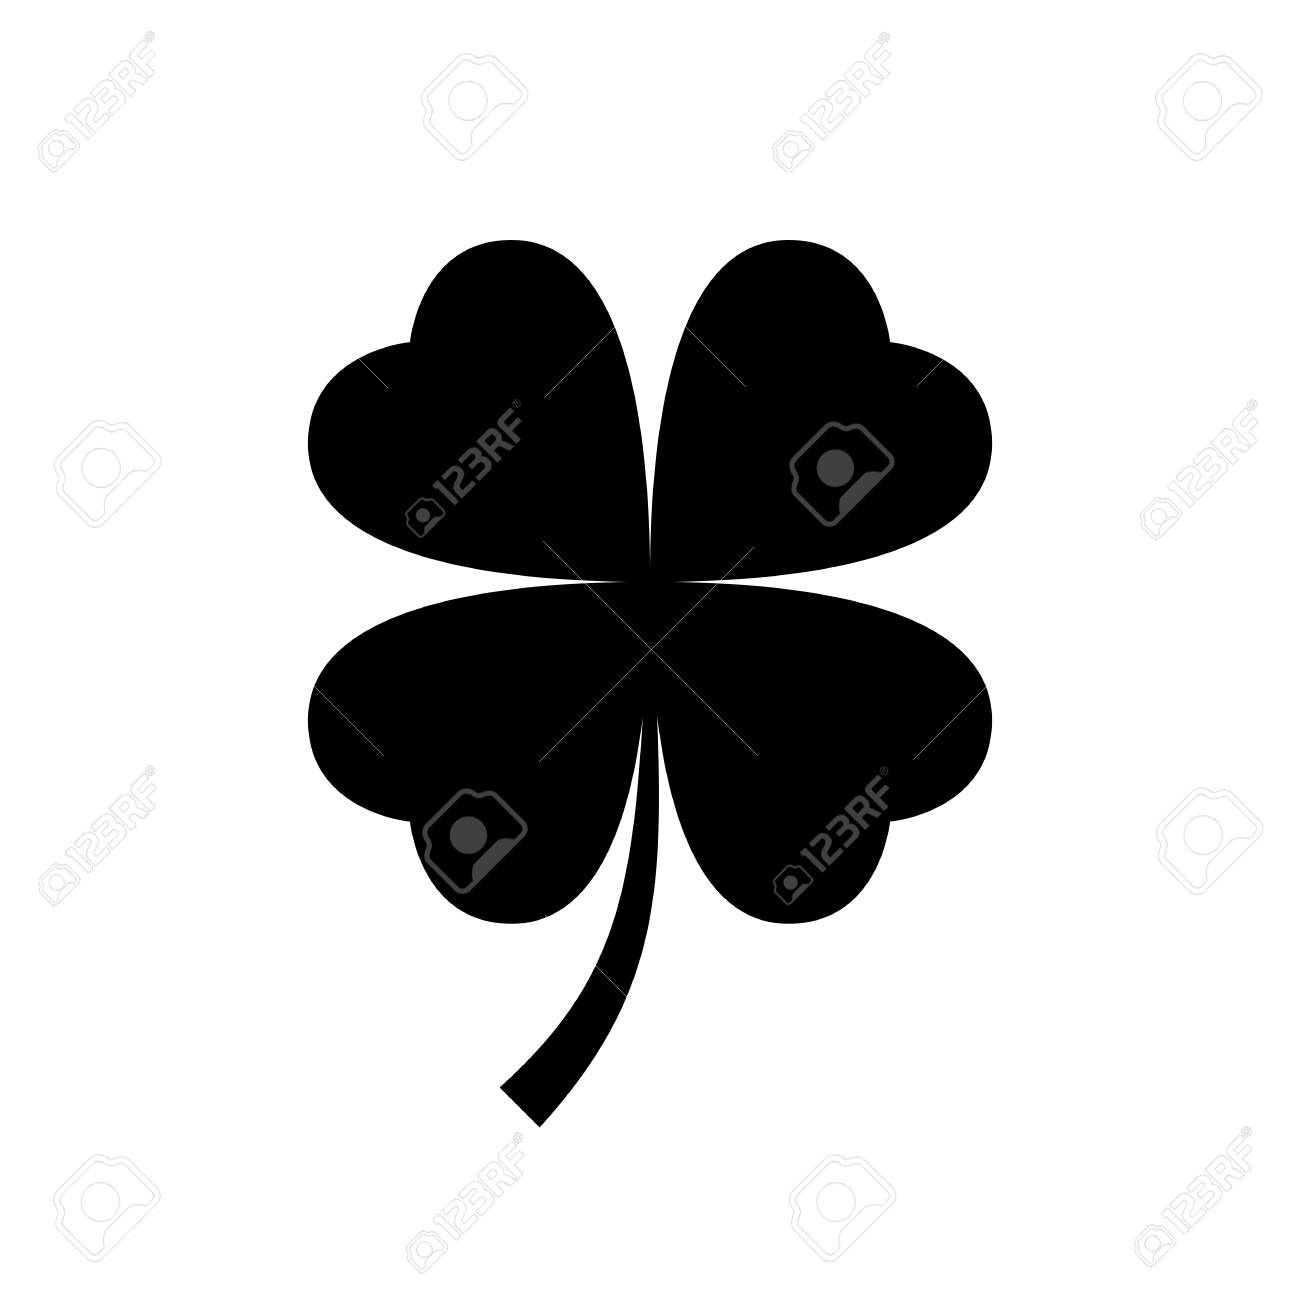 four leaf clover icon